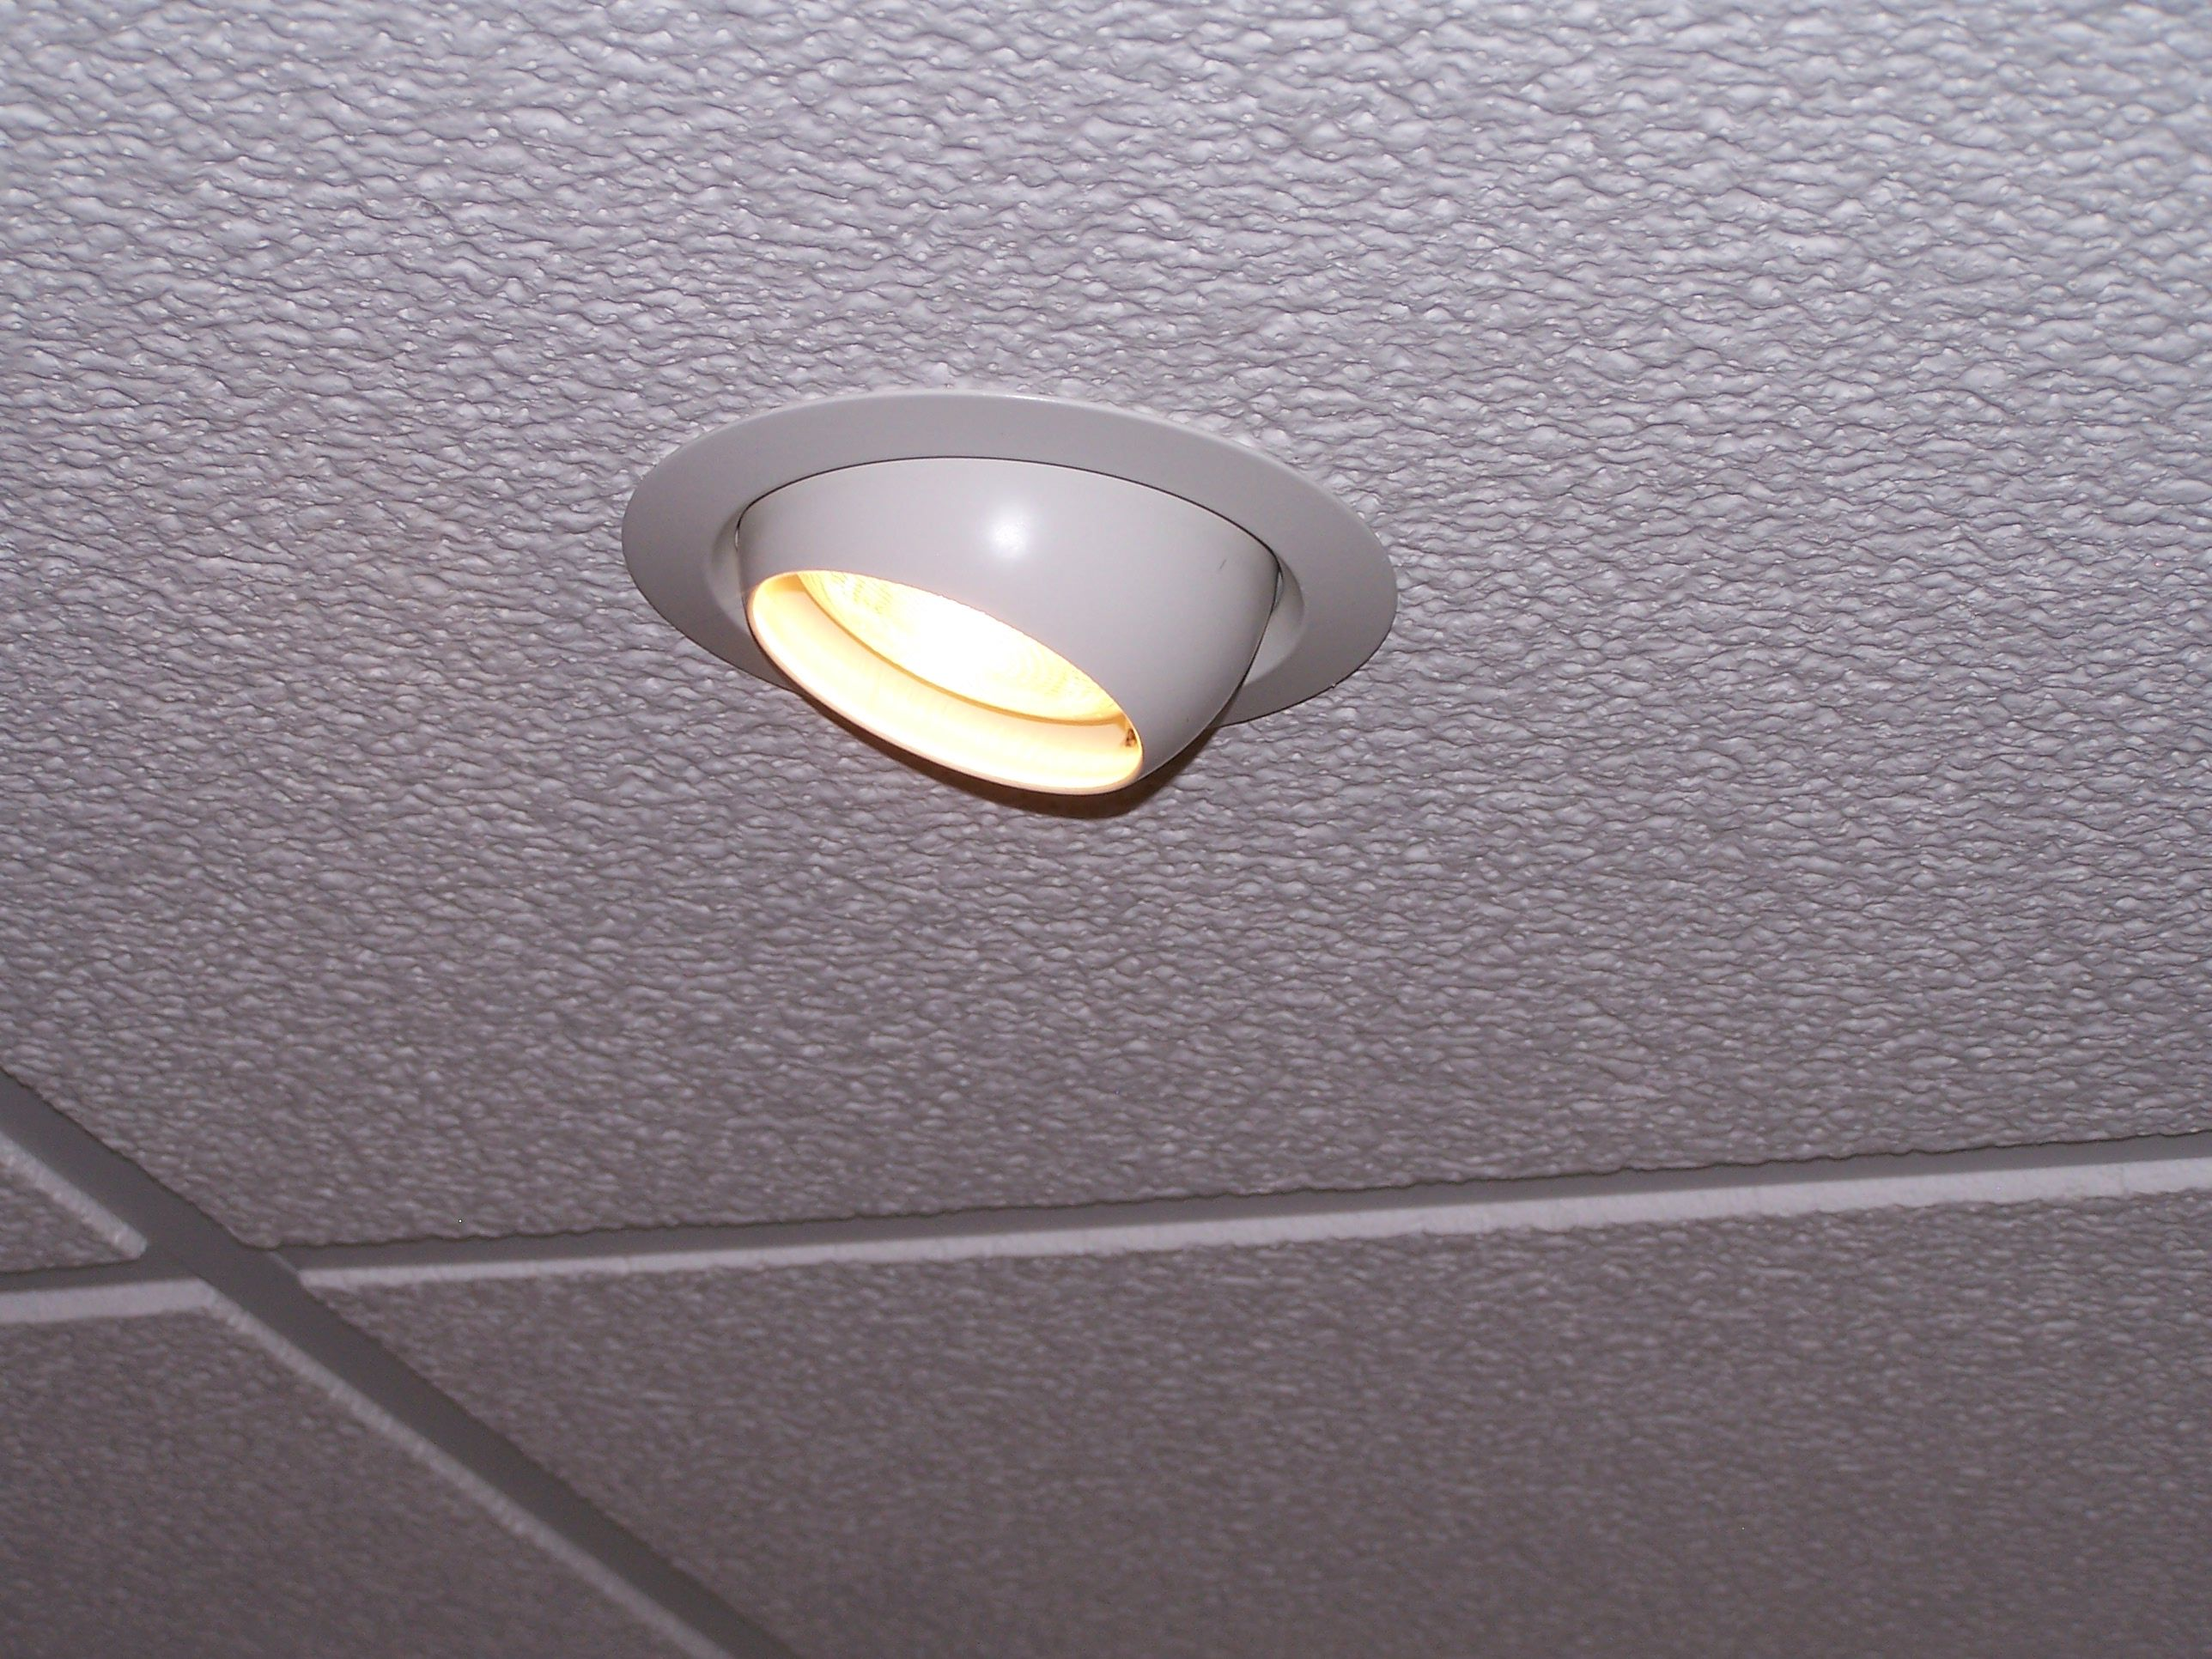 Recessed Lighting Fixtures In Suspended Ceiling Systems Recessed